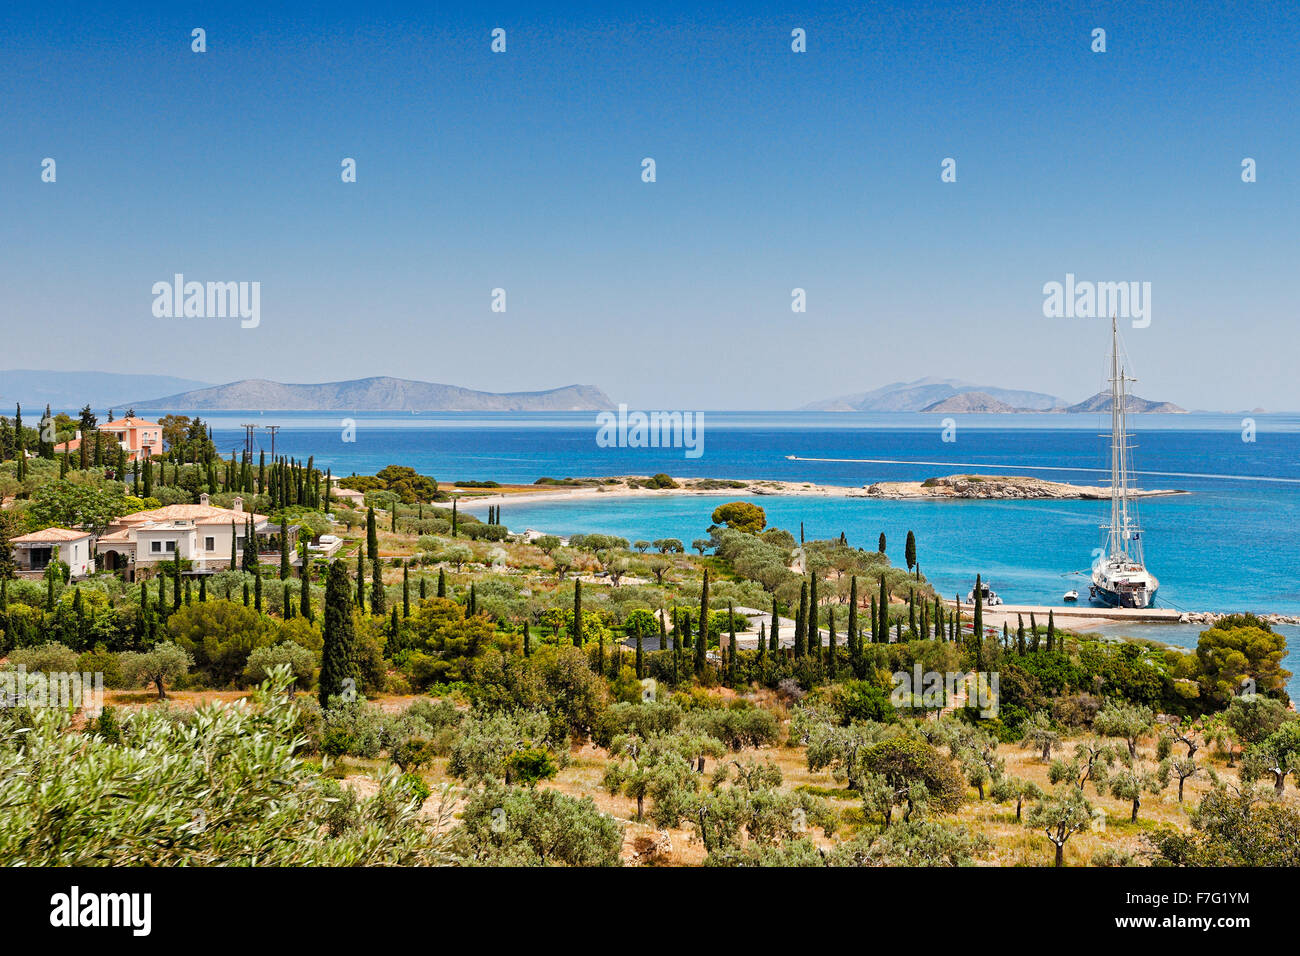 Country houses with harbor on the south side of Spetses island, Greece - Stock Image